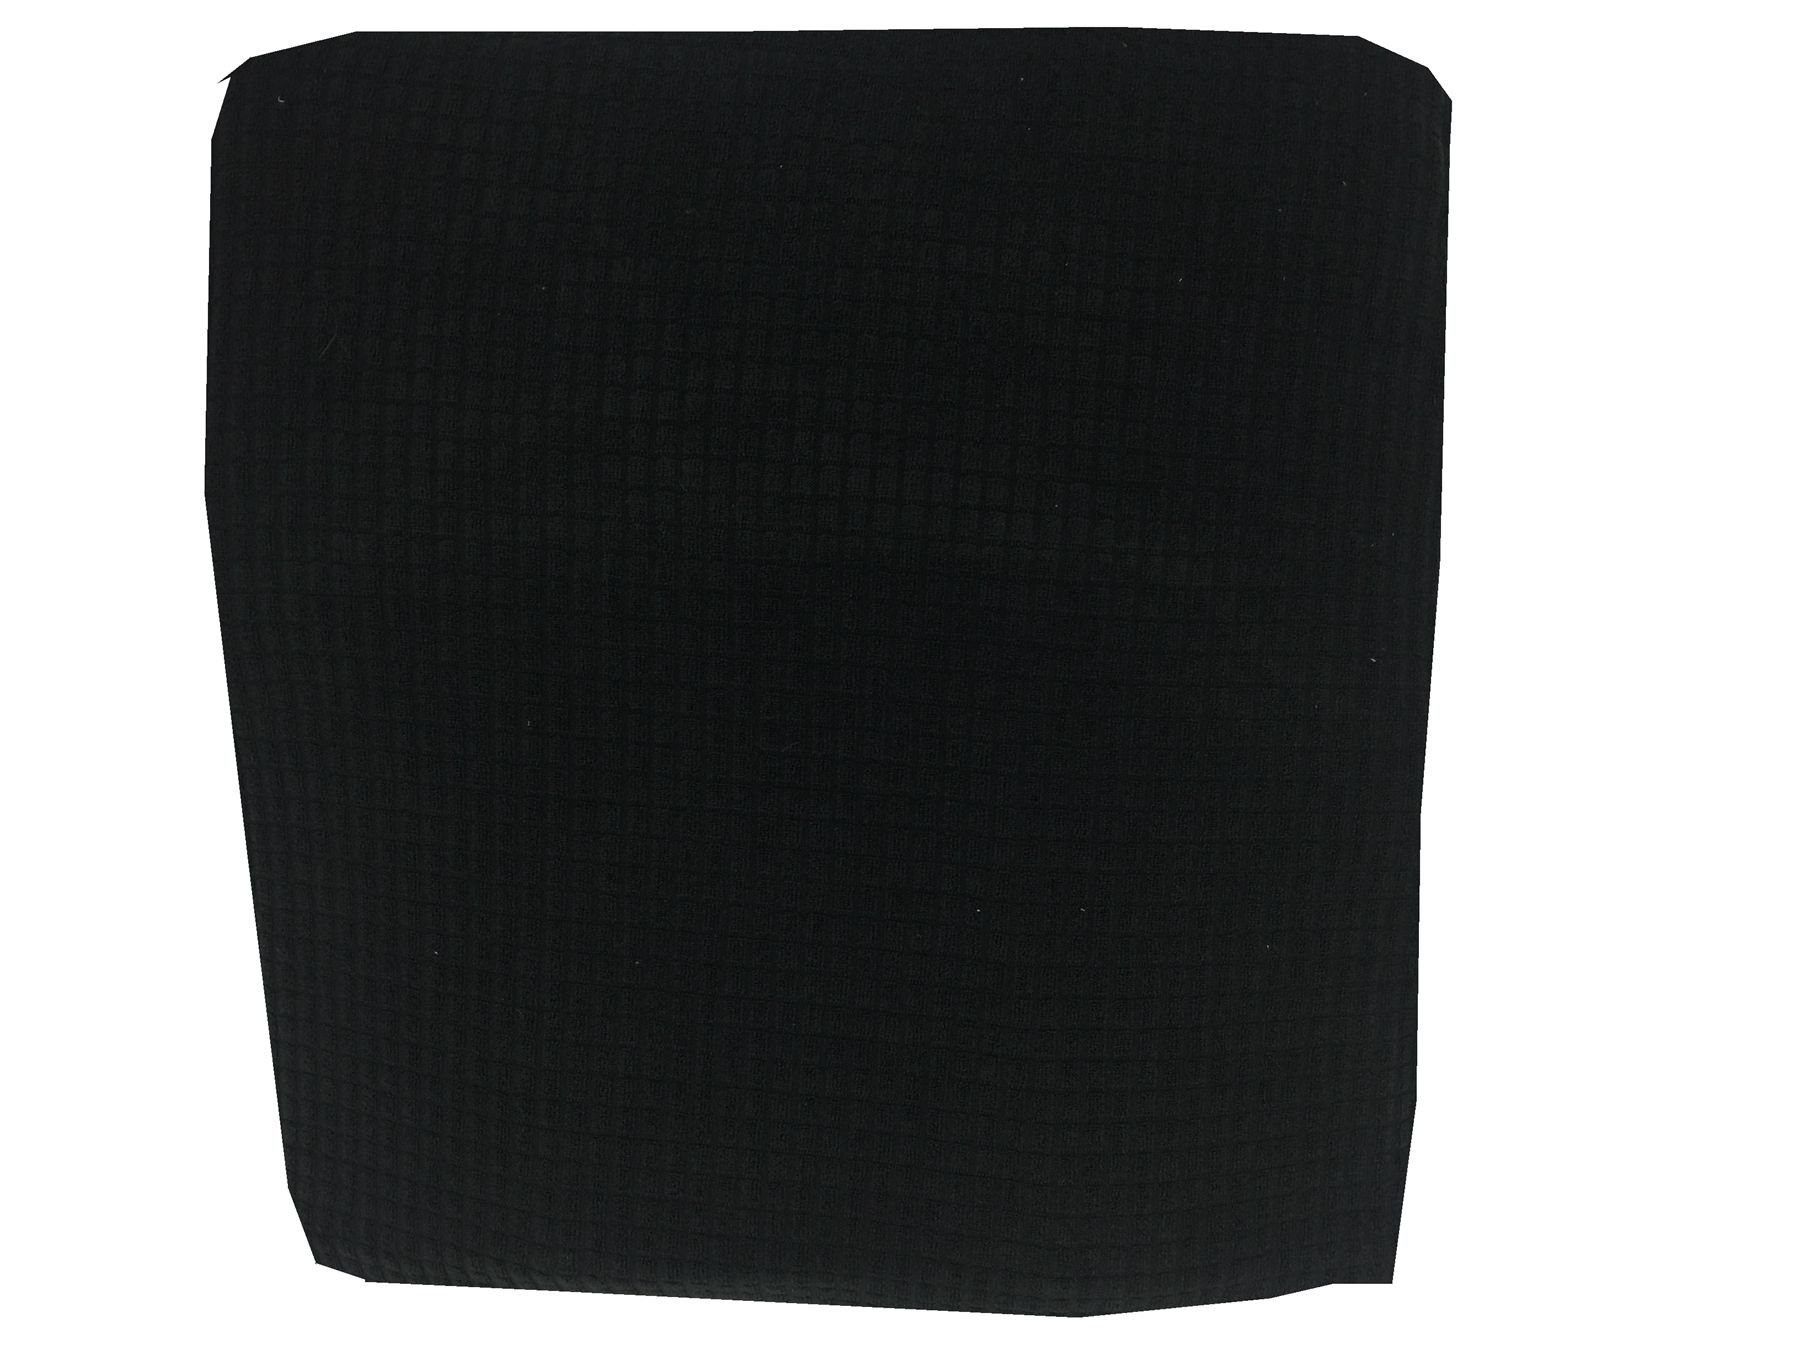 Queen Linens One Piece Stretch Recliner Slipcover, Stretch Fit Furniture Chair Recliner Lazy Boy Cover Slipcover, Estella (Black) by Queen Linens (Image #5)